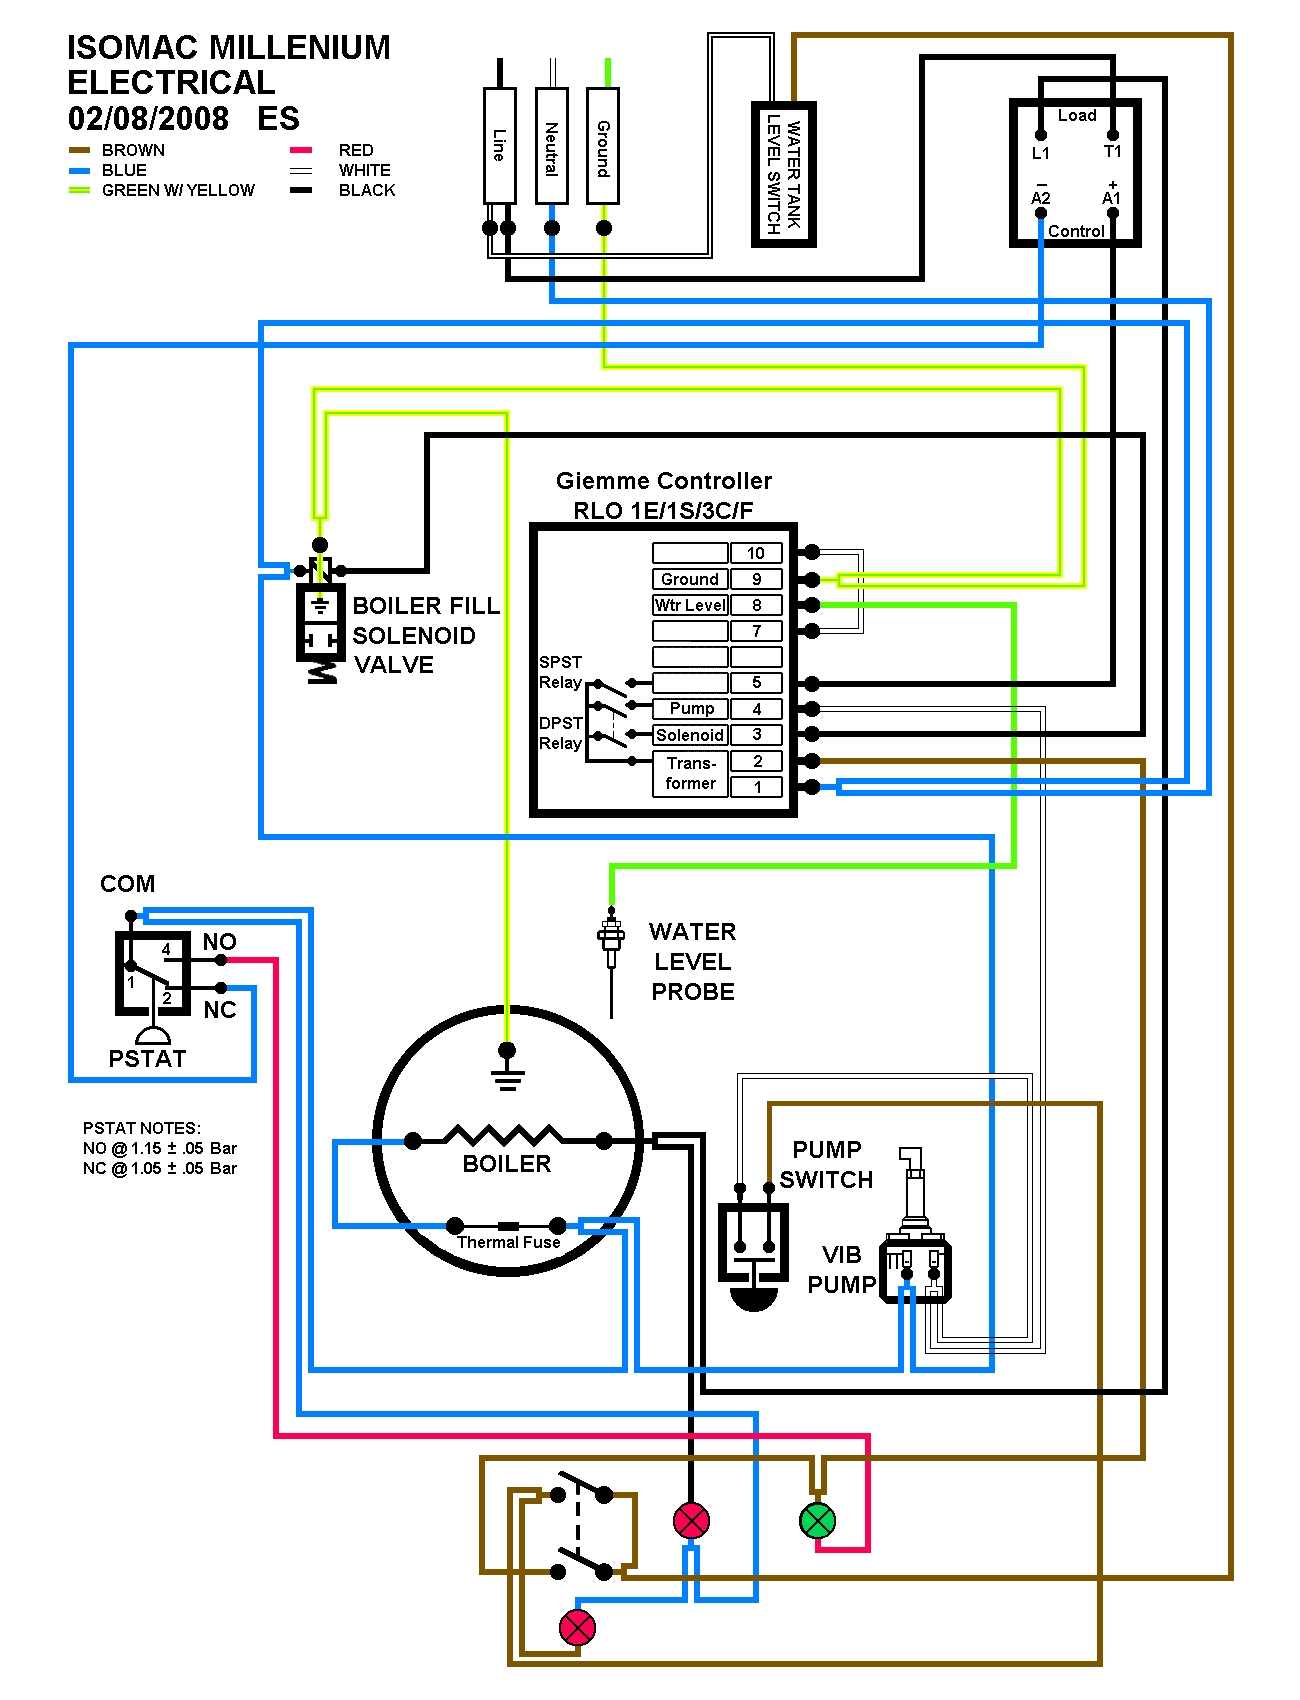 Coffeegeek Espresso Machines Help With Isomac Tea Ll Electric Scooter Wiring Diagram Get Free Image About Erics